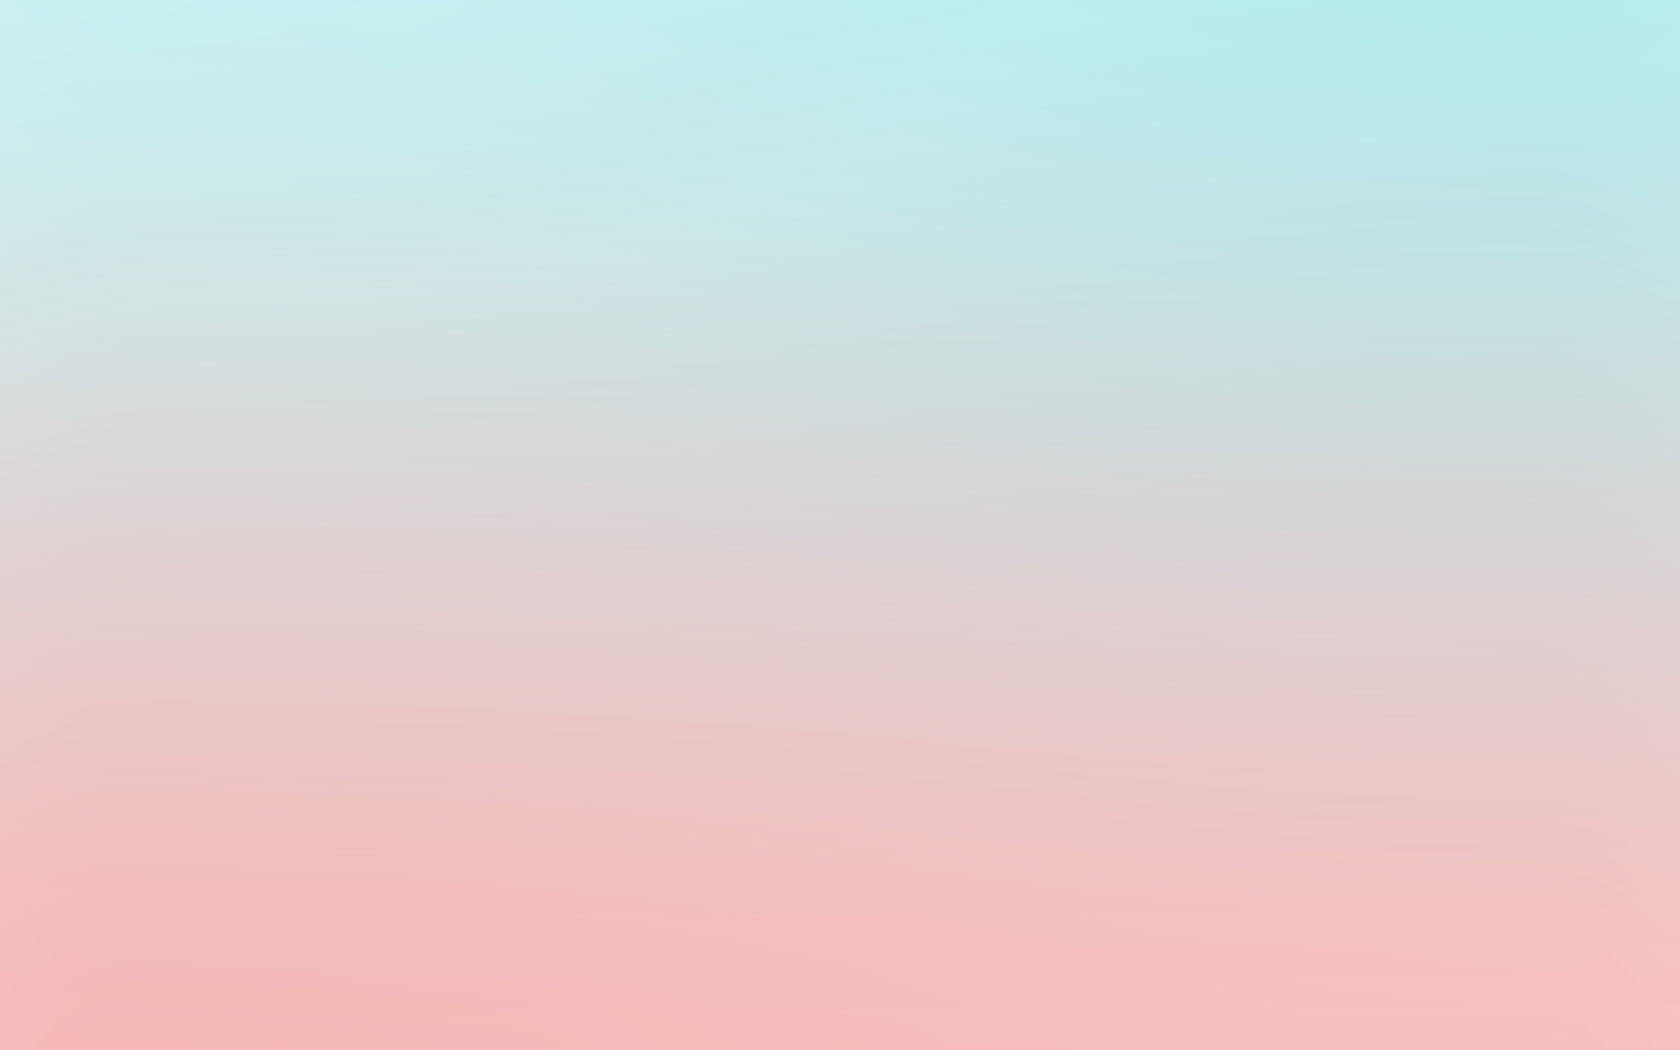 Fall Wallpaper For Desktop 1920x1080 Sm40 Blue Red Soft Pastel Blur Gradation Wallpaper